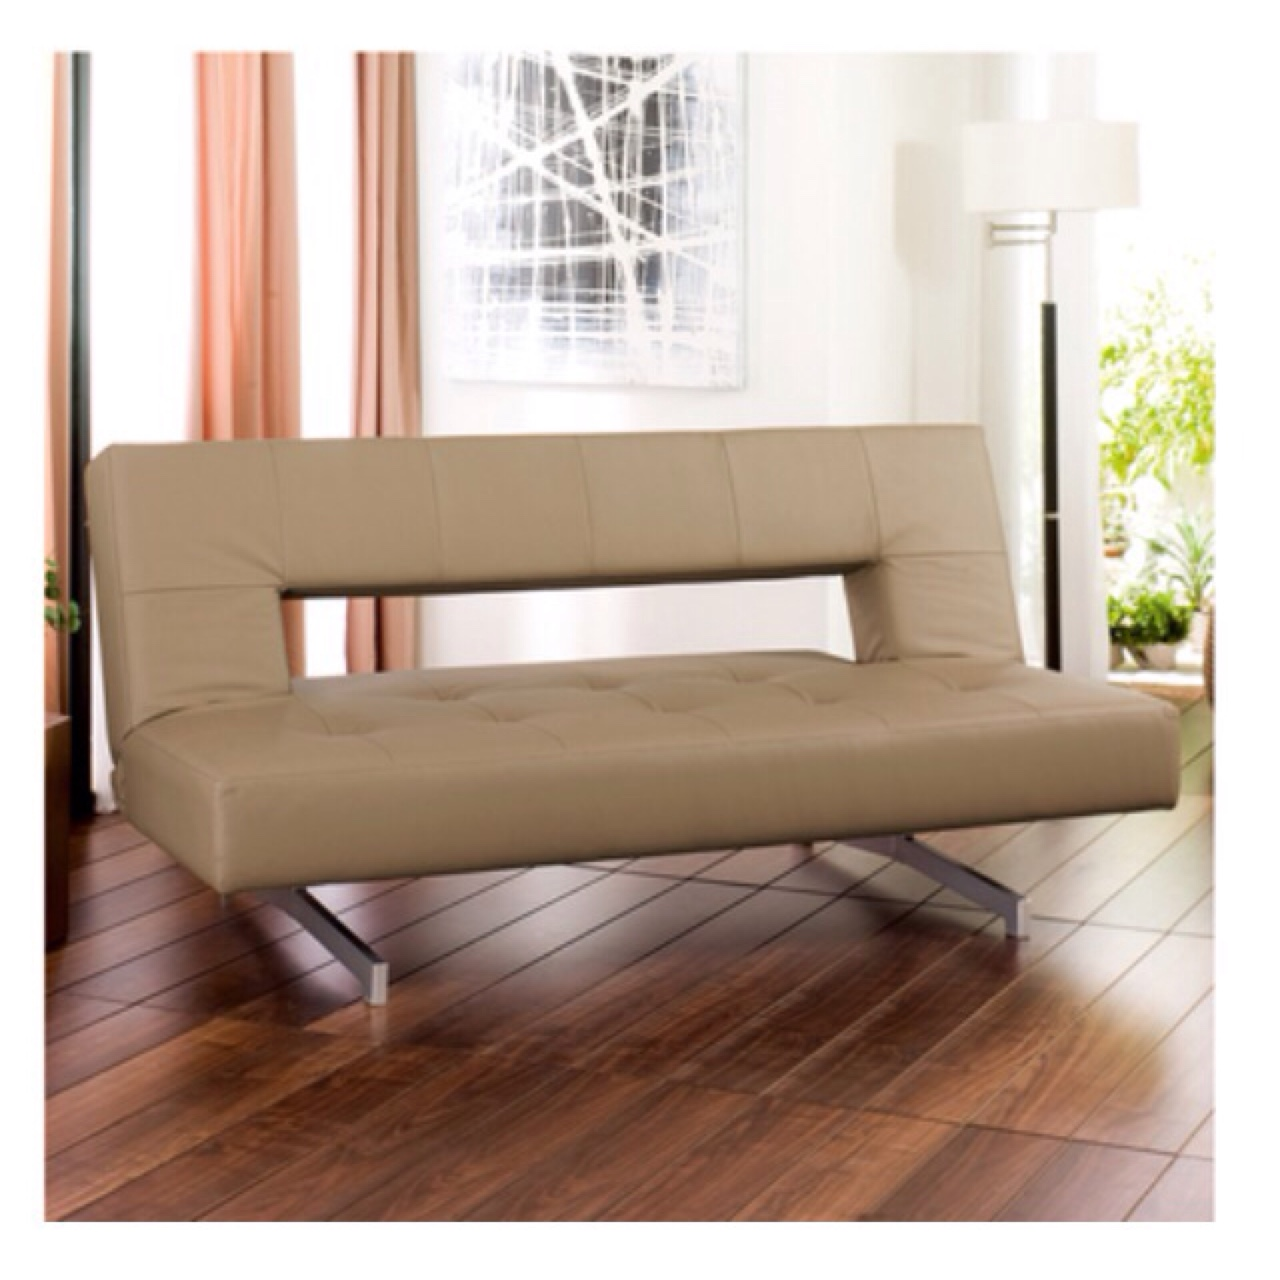 Cool For Sale A Great Dwell Pisa Sofa Bed In Tan Faux Depop Gmtry Best Dining Table And Chair Ideas Images Gmtryco